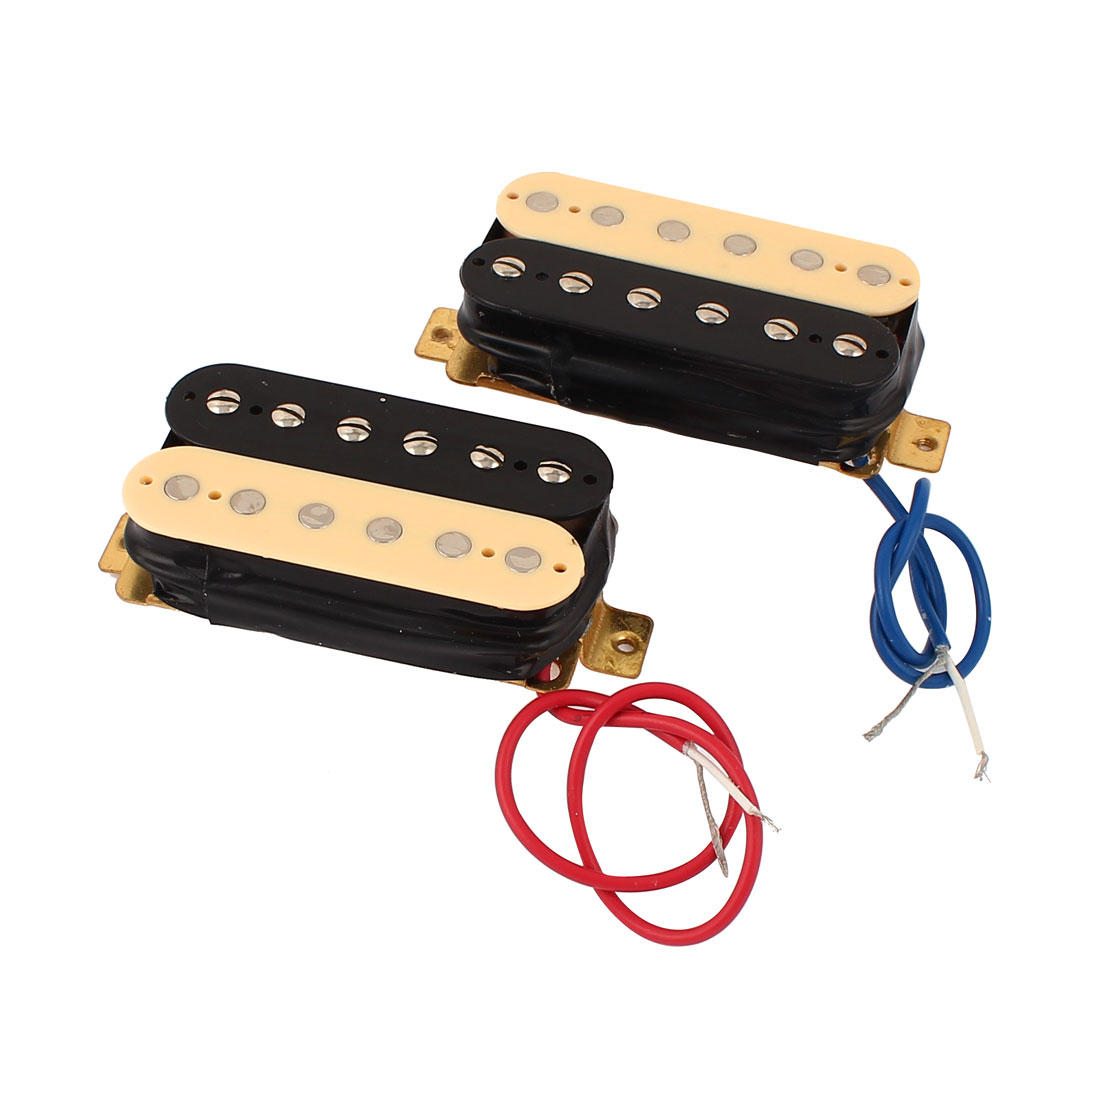 "2 Pcs 7.8"" Wired 2 Row Neck Bridge Humbucker ST Guitar Pickups"